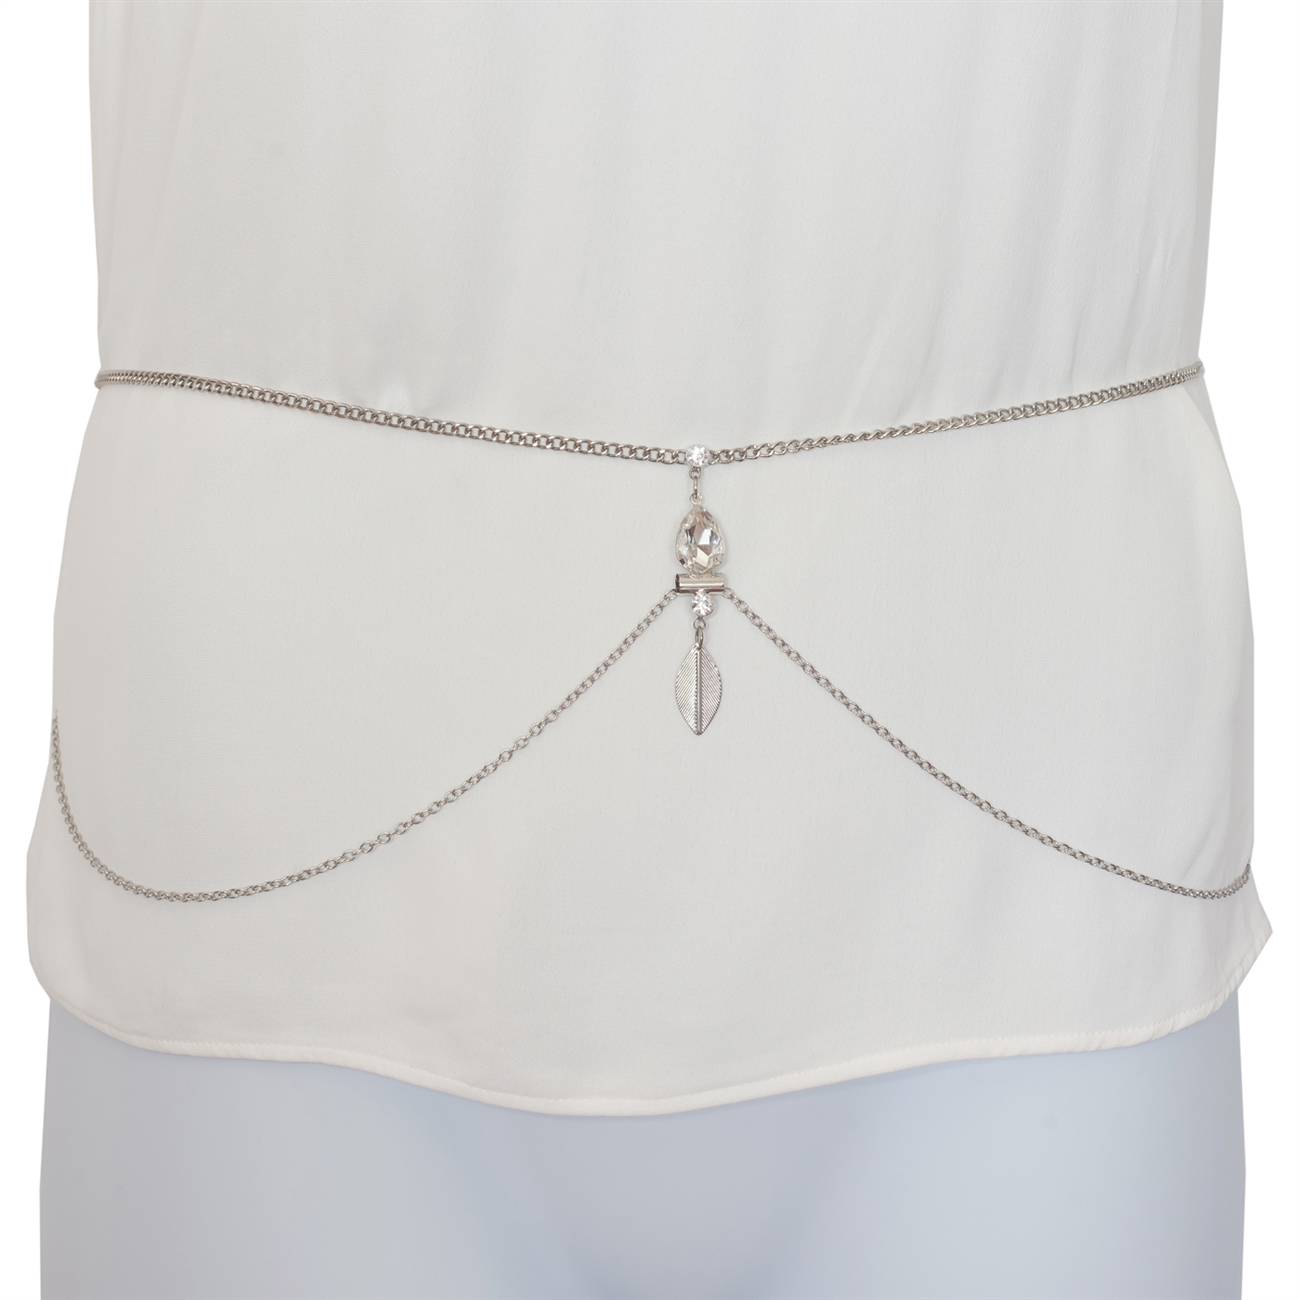 Plus Size Rhinestone Pendant Belly Waist Belt Body Chain Silver